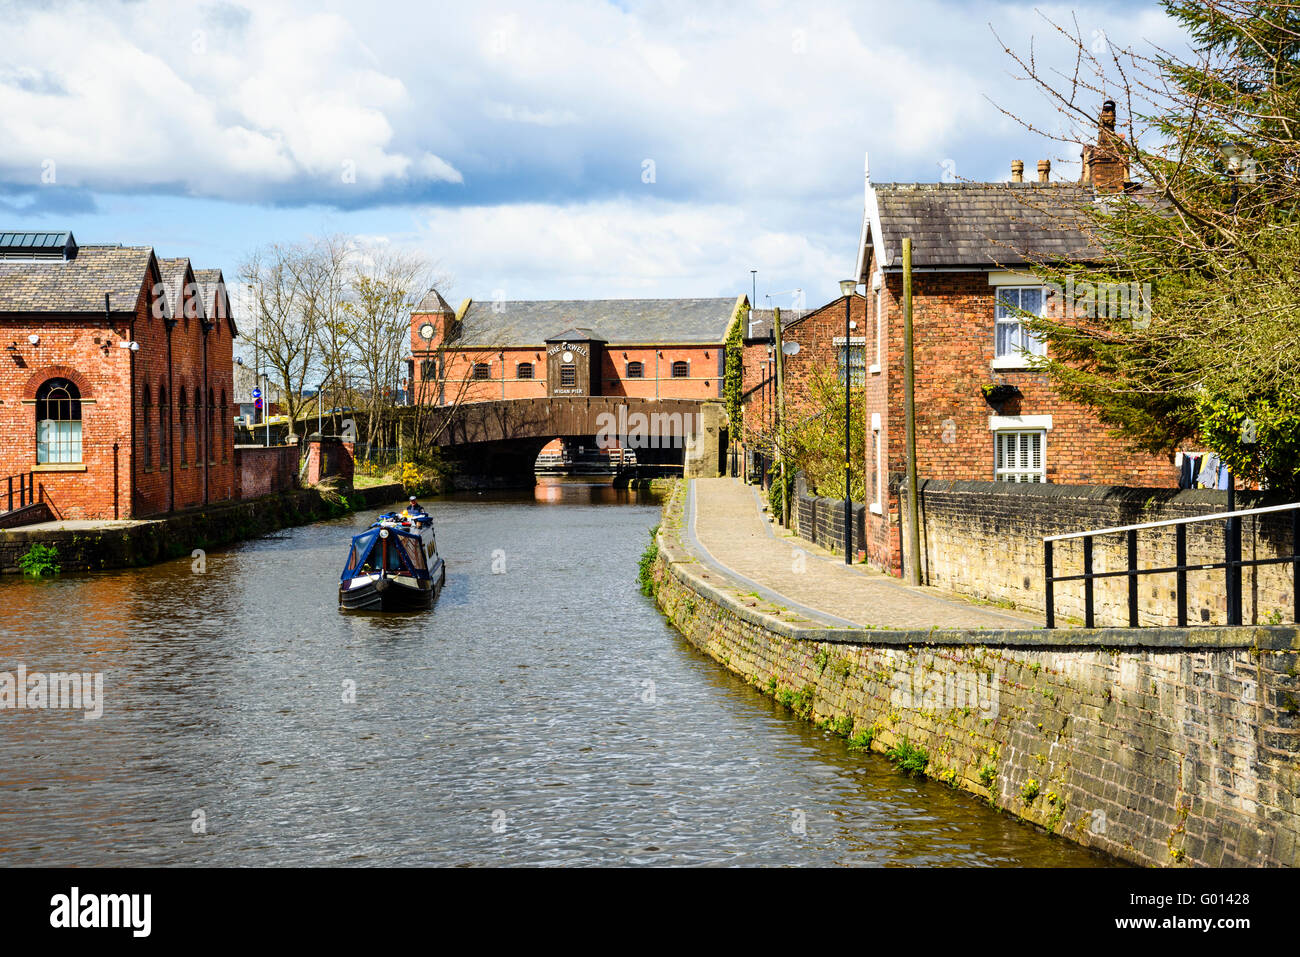 Narrowboat on Leeds and Liverpool Canal in Wigan Greater Manchester UK - Stock Image